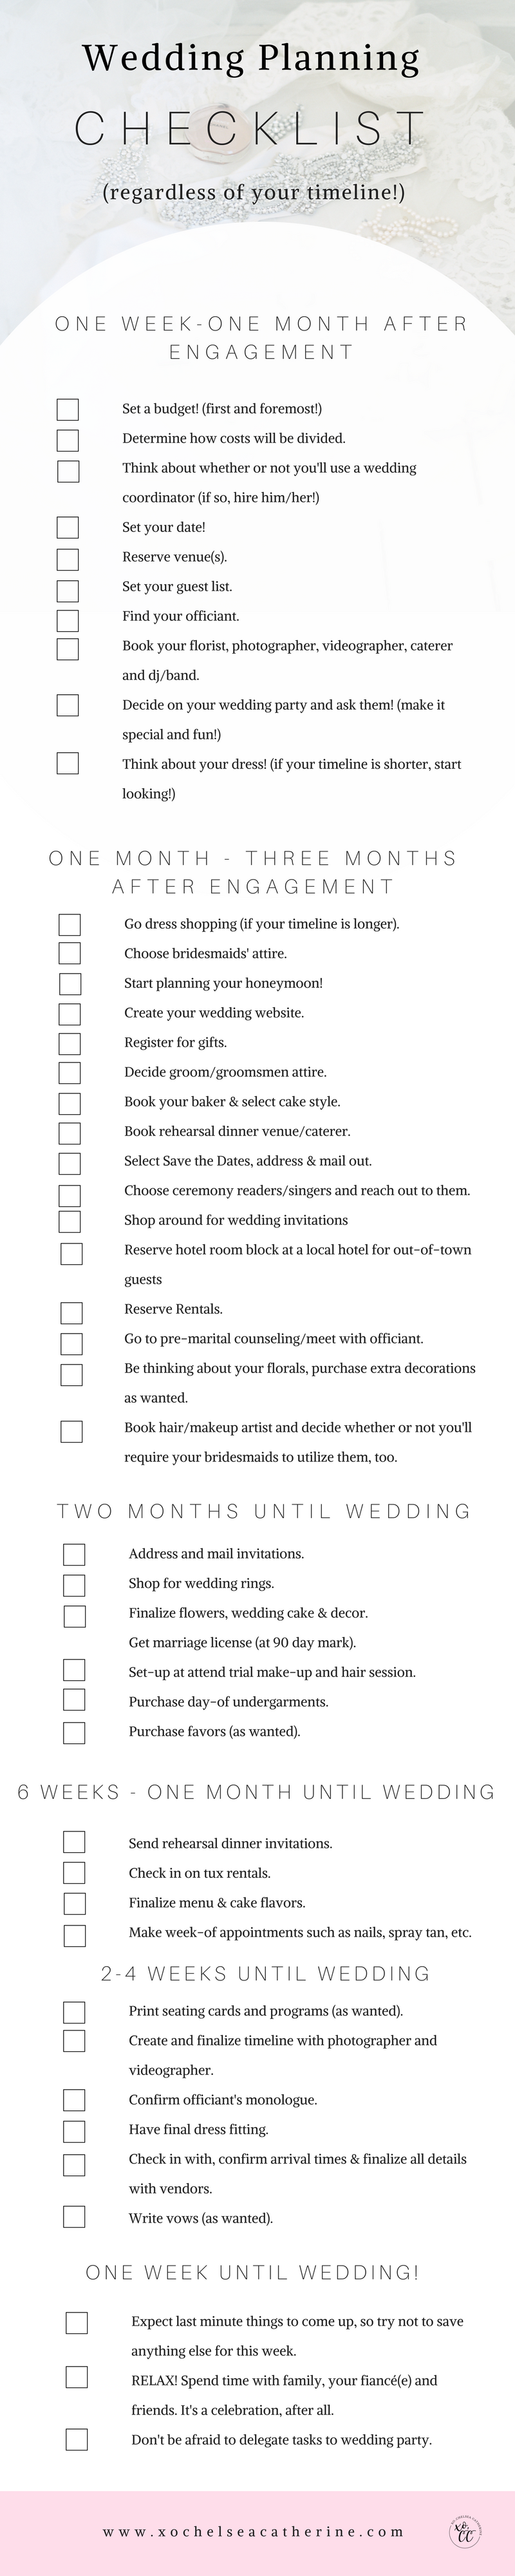 Complete Wedding Planning Checklist Regardless Of Your Timeline